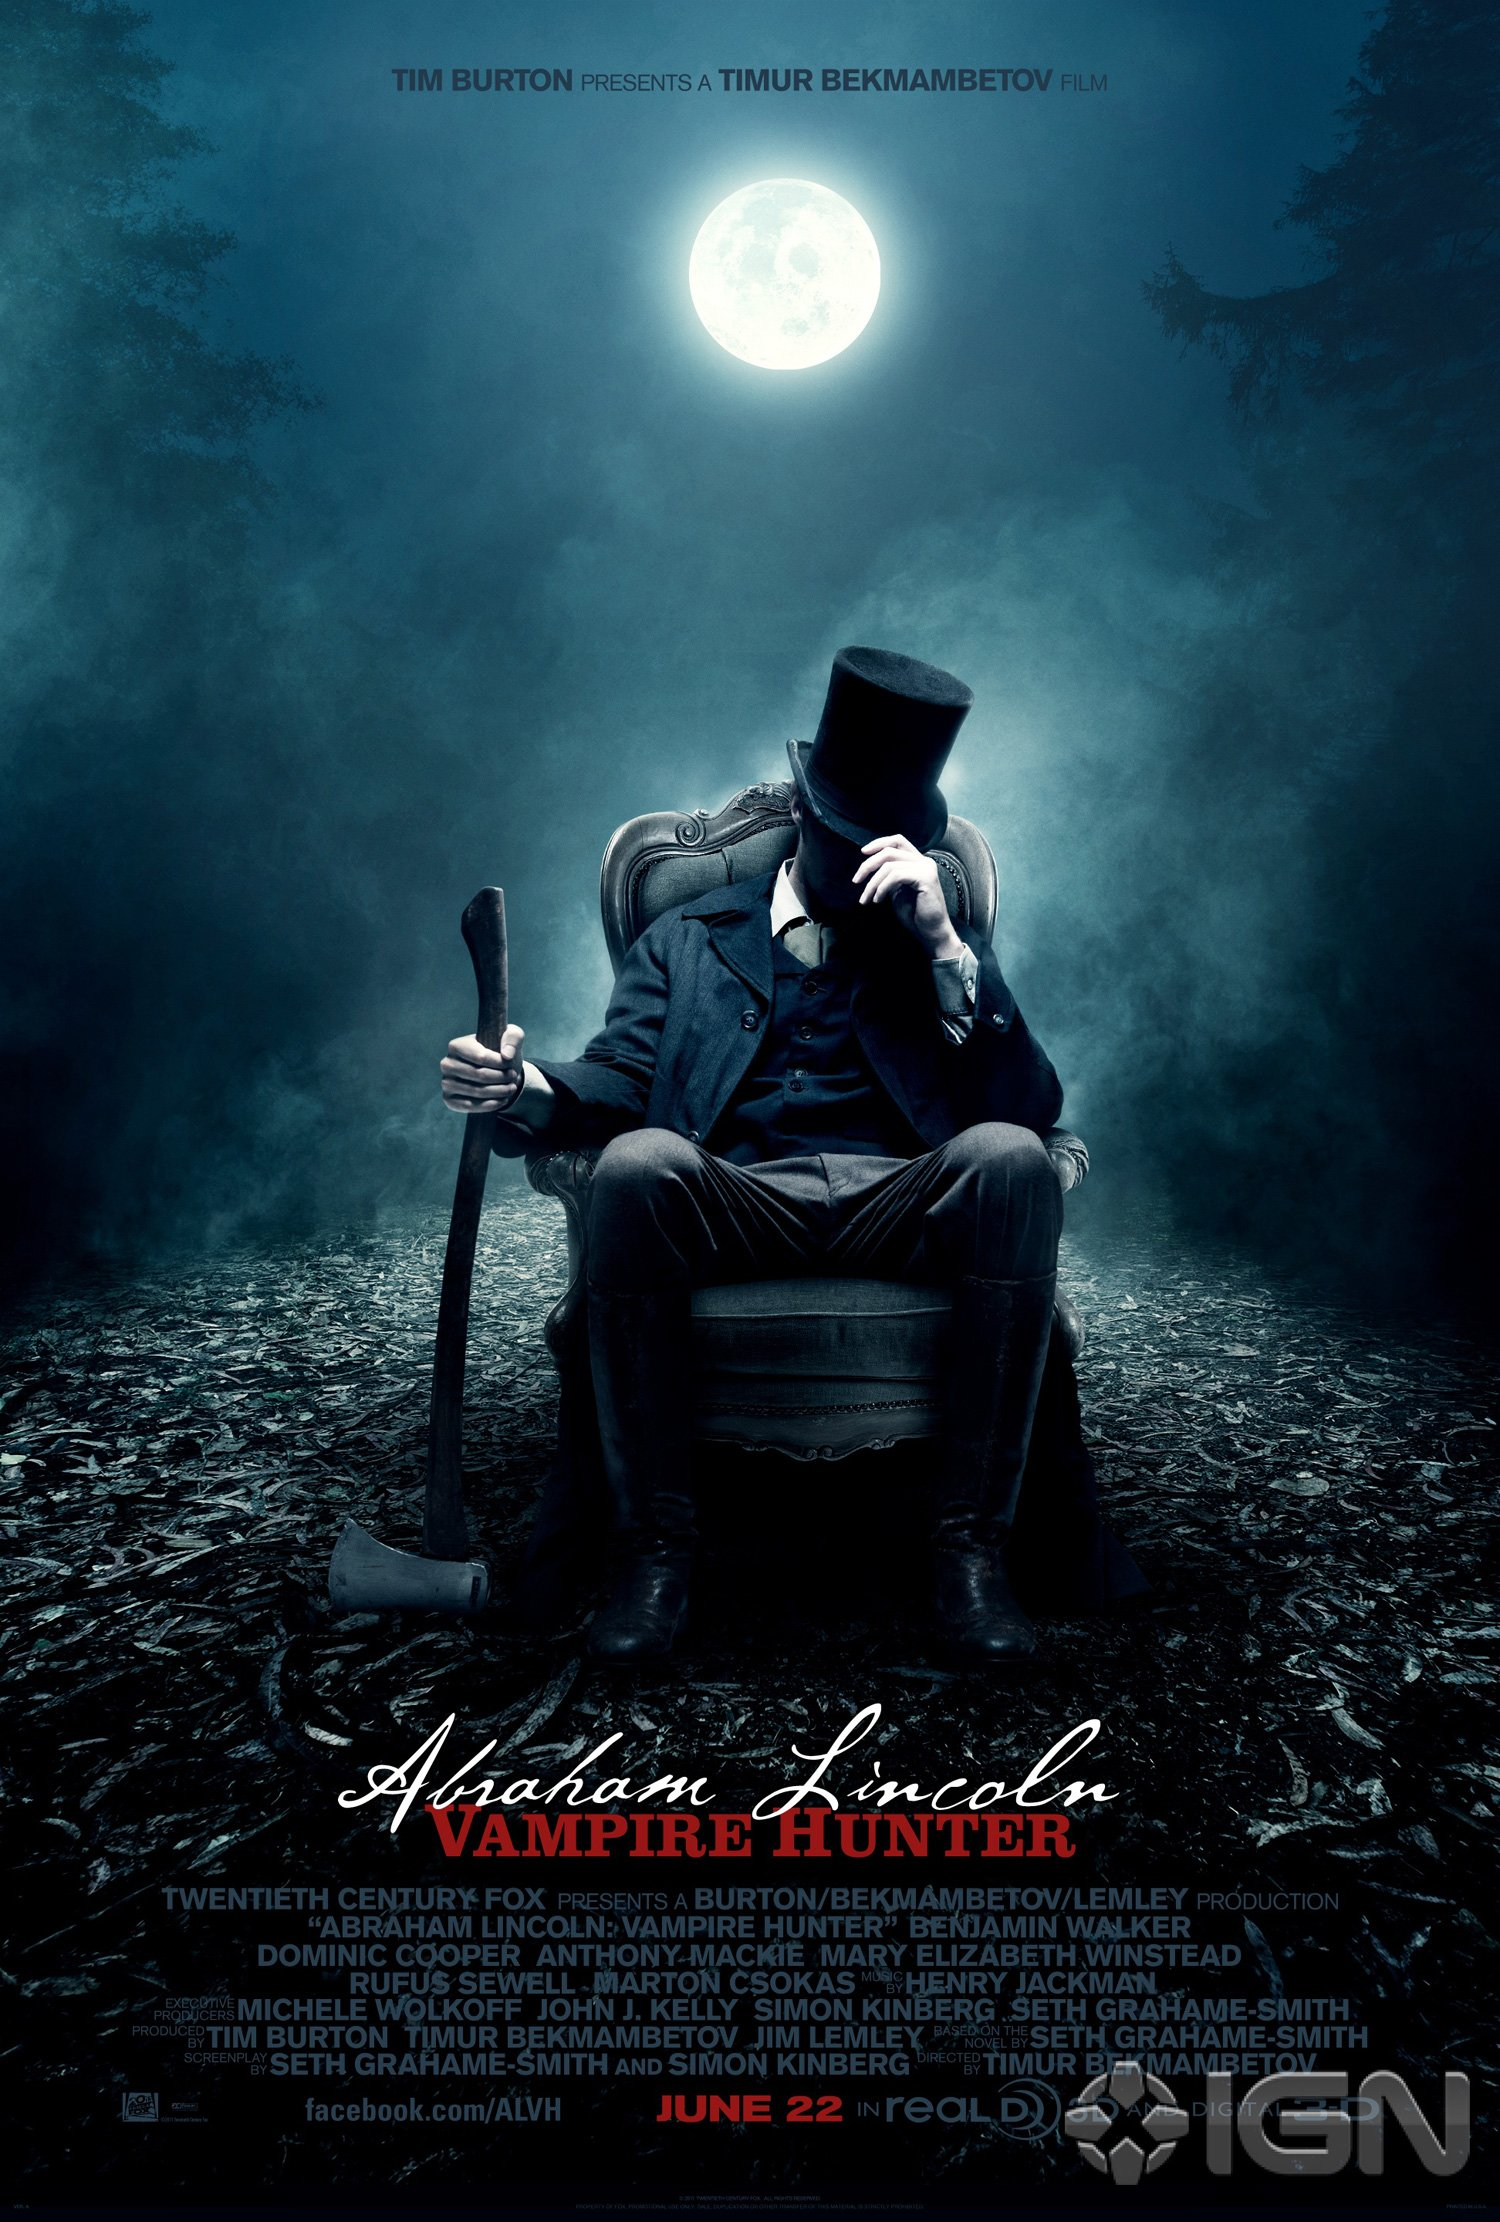 1-ABRAHAM-LINCOLN-VAMPIRE-HUNTER-POSTERS dans Films series - News de tournage